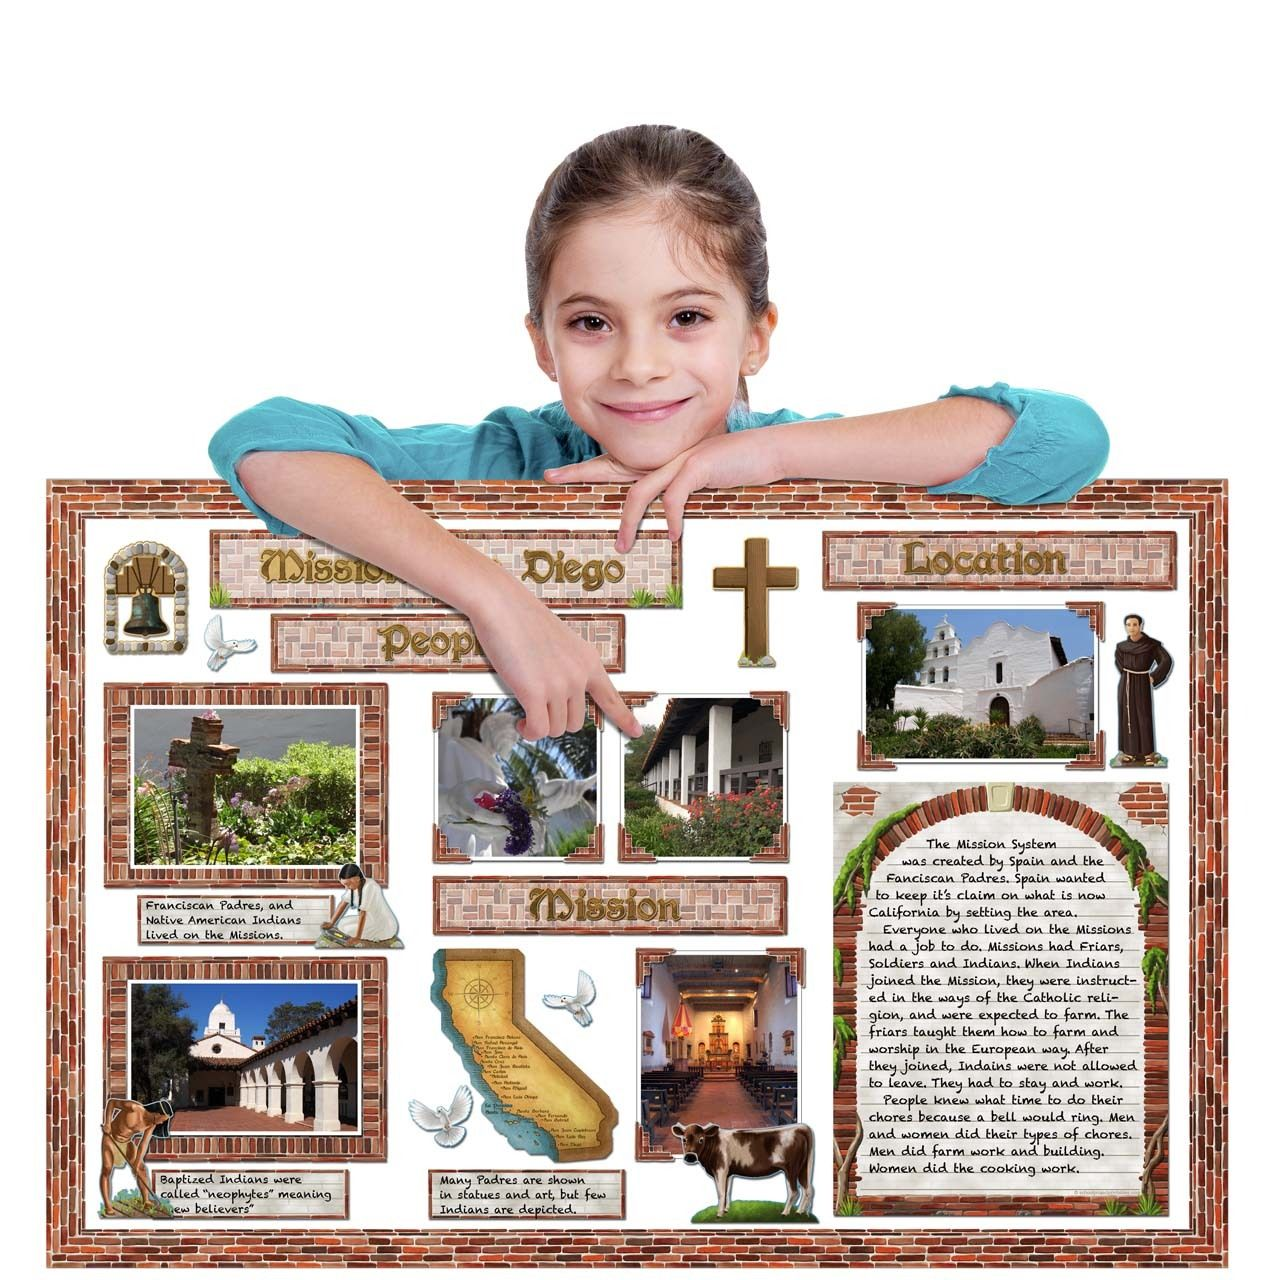 Poster design ideas for school projects - California Mission Brick Poster Pack Ready To Use School Project Printables